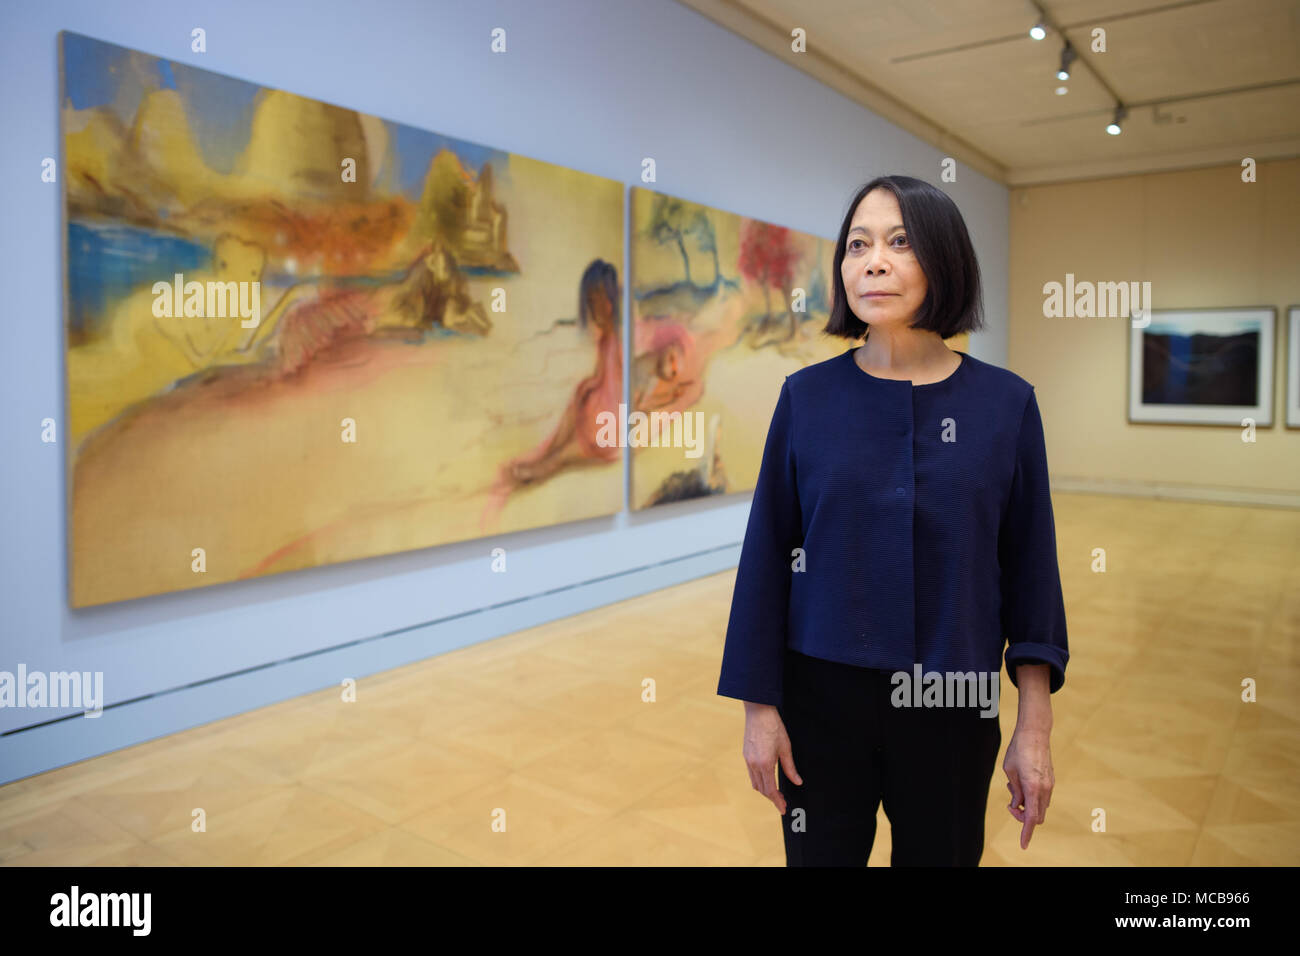 10 April 2018, Germany, Berlin: Artist Leiko Ikemura stands next to one of her artistic works titled 'Sinus Spring' at the exhibition 'Leiko Ikemura im Dialog mit Donata und Wim Wenders' (lit. Leiko Ikemura in dialogue with Donata and Wim Wenders) at the Max-Liebermann Haus exhibition venue. The exhibition runs from 11 April to 27 May 2018. Photo: Gregor Fischer/dpa - Stock Image